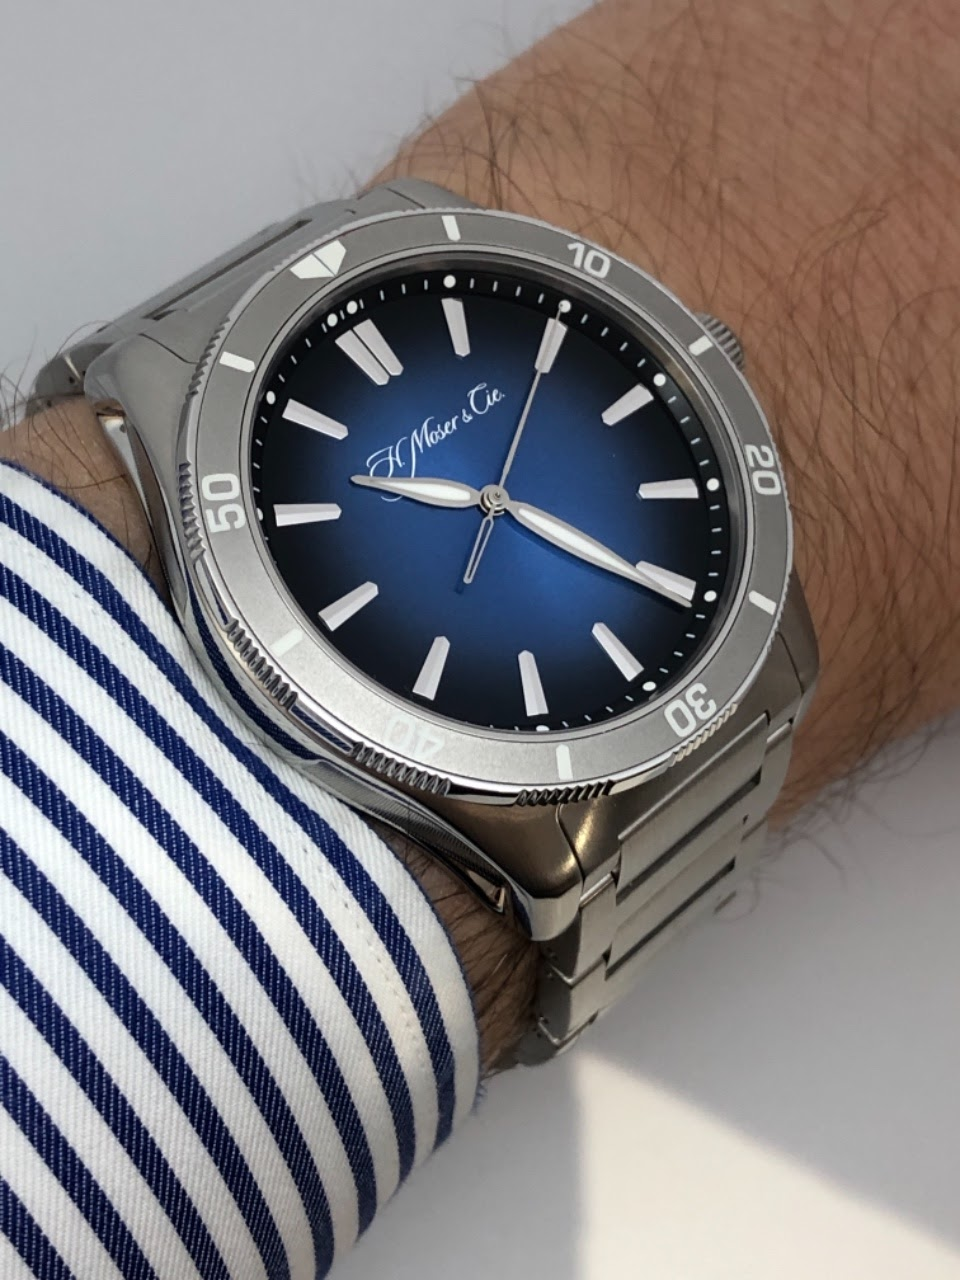 moser - [SIHH 2019] : reportage H.Moser & Cie Home_5972281